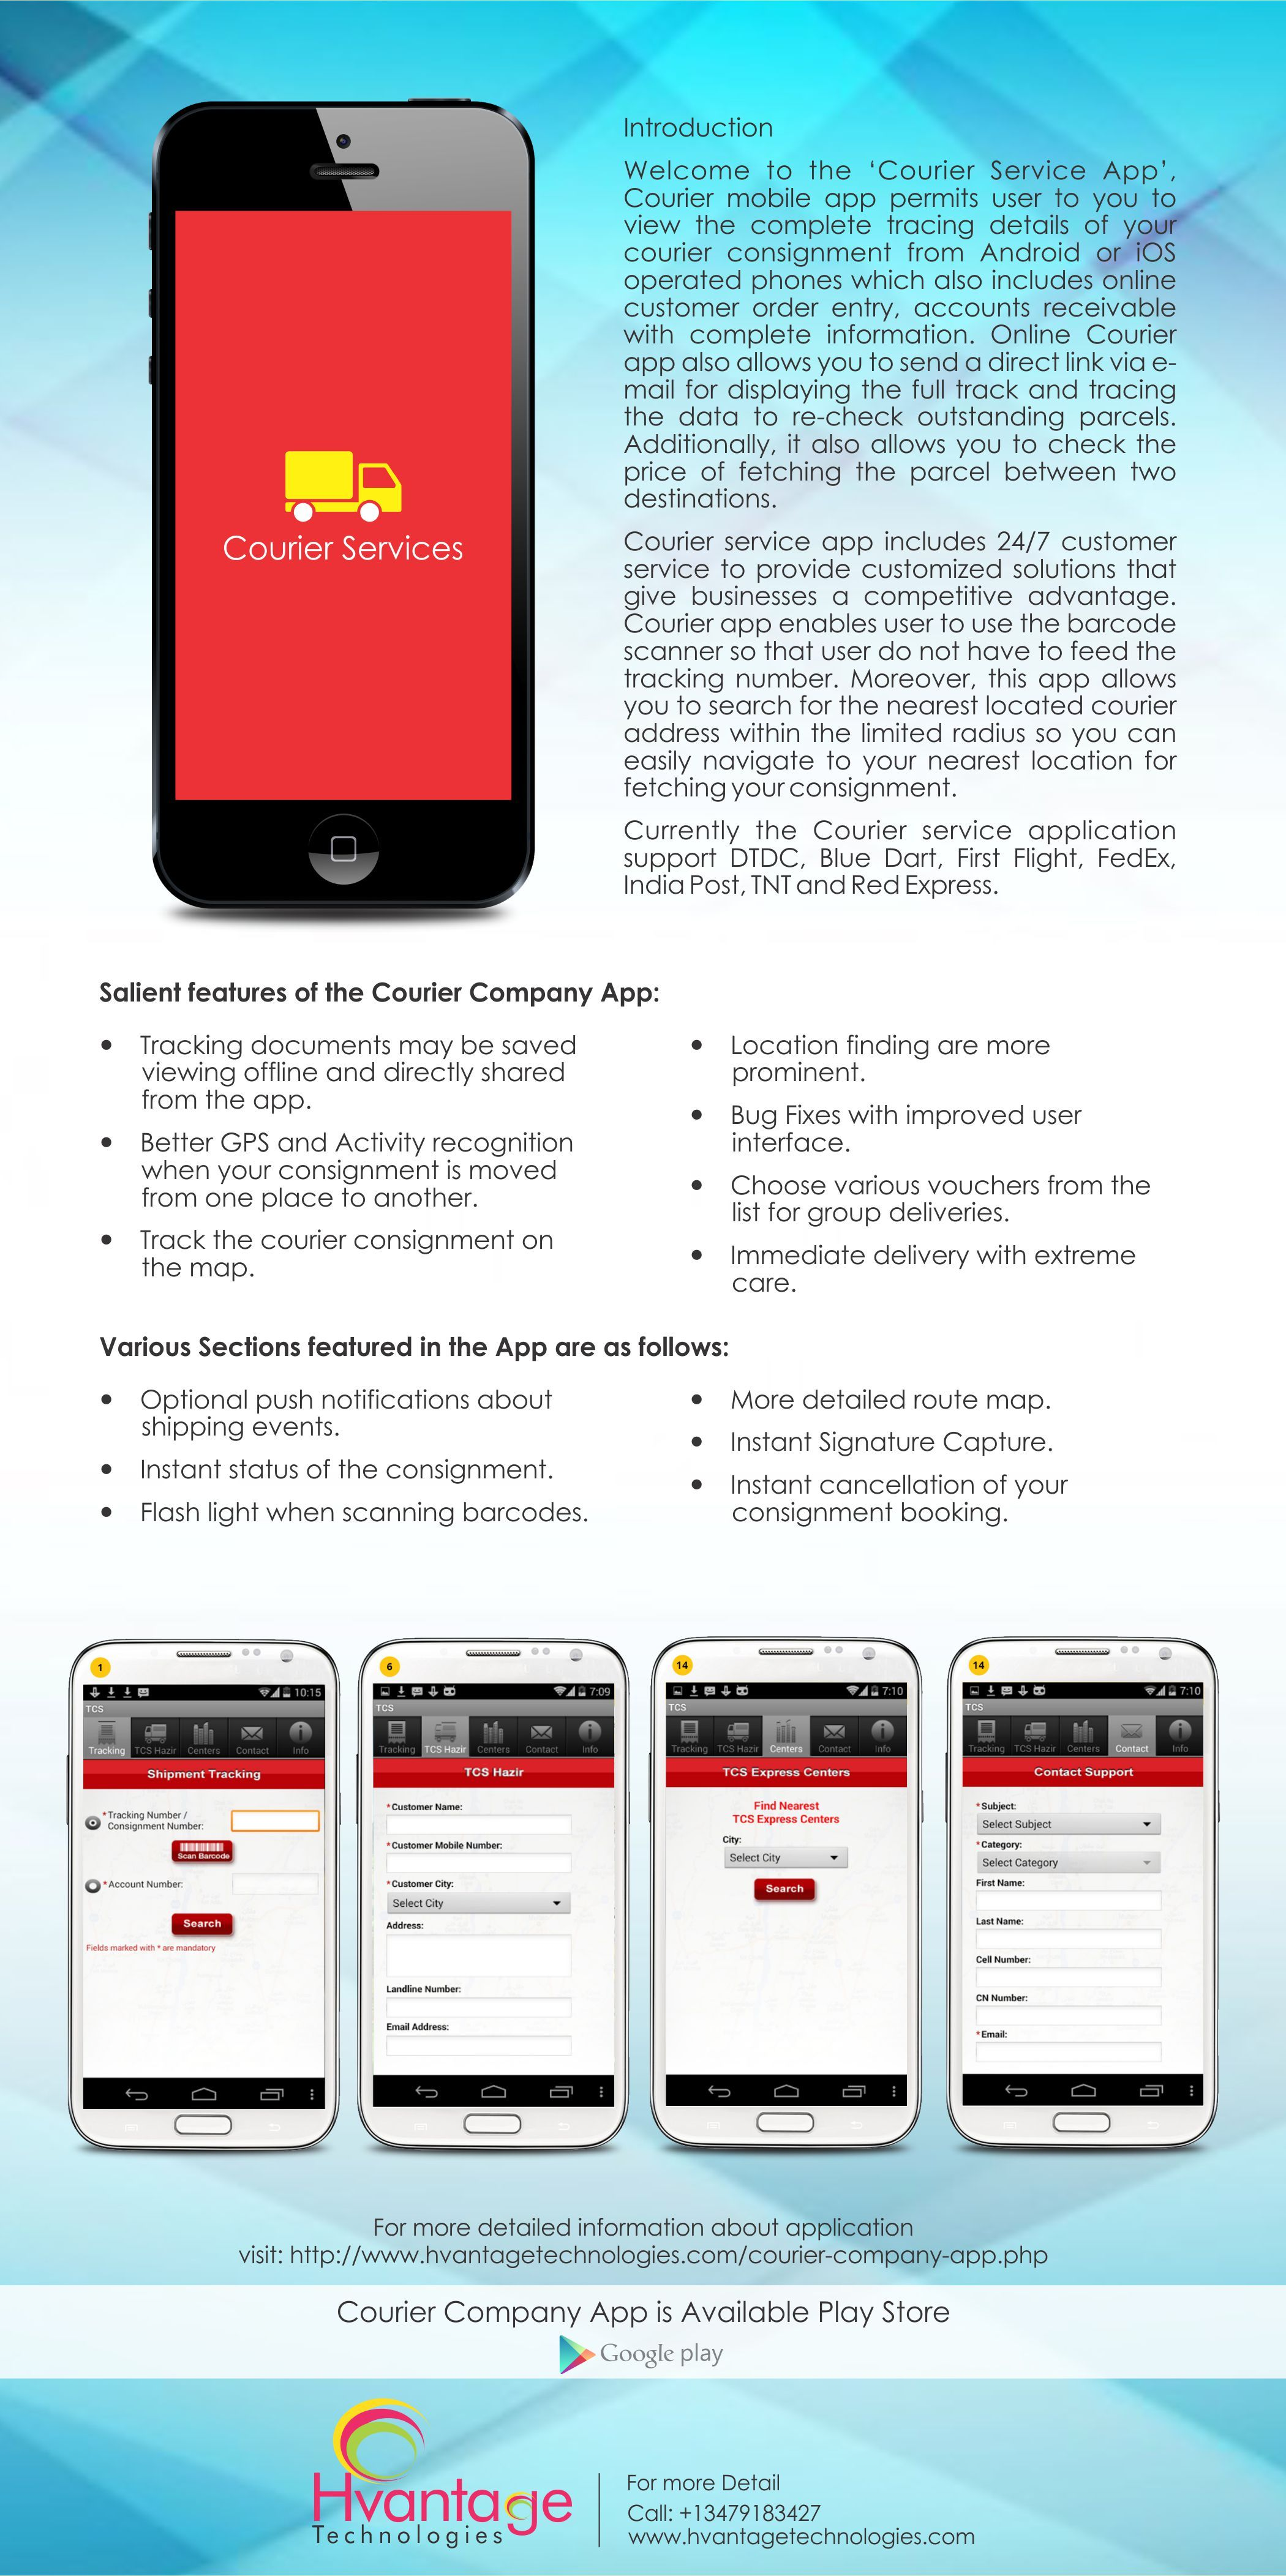 Courier #service #app includes 24/7 customer service & support #DTDC